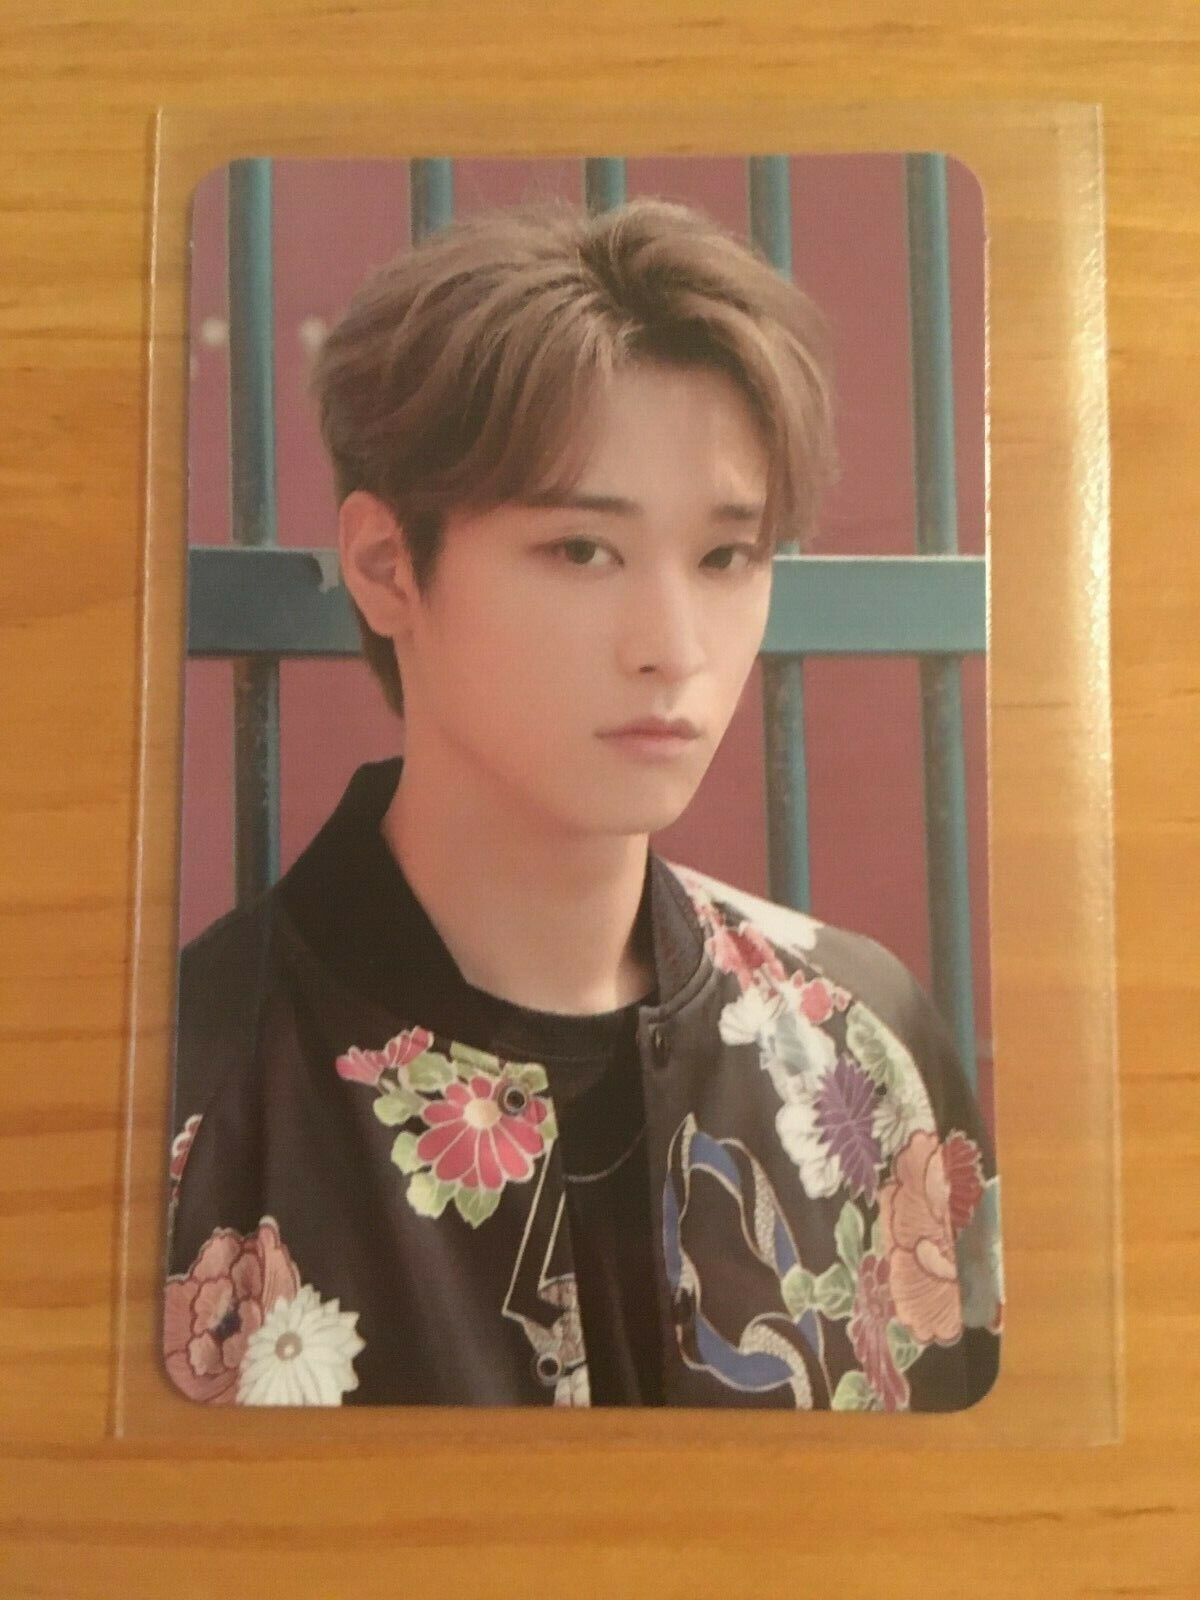 THE BOYZ - DREAMLIKE Official Photocards (MMT -limited- + DREAMLIKE + DAY + DIY) Juyeon [MMT Signed]